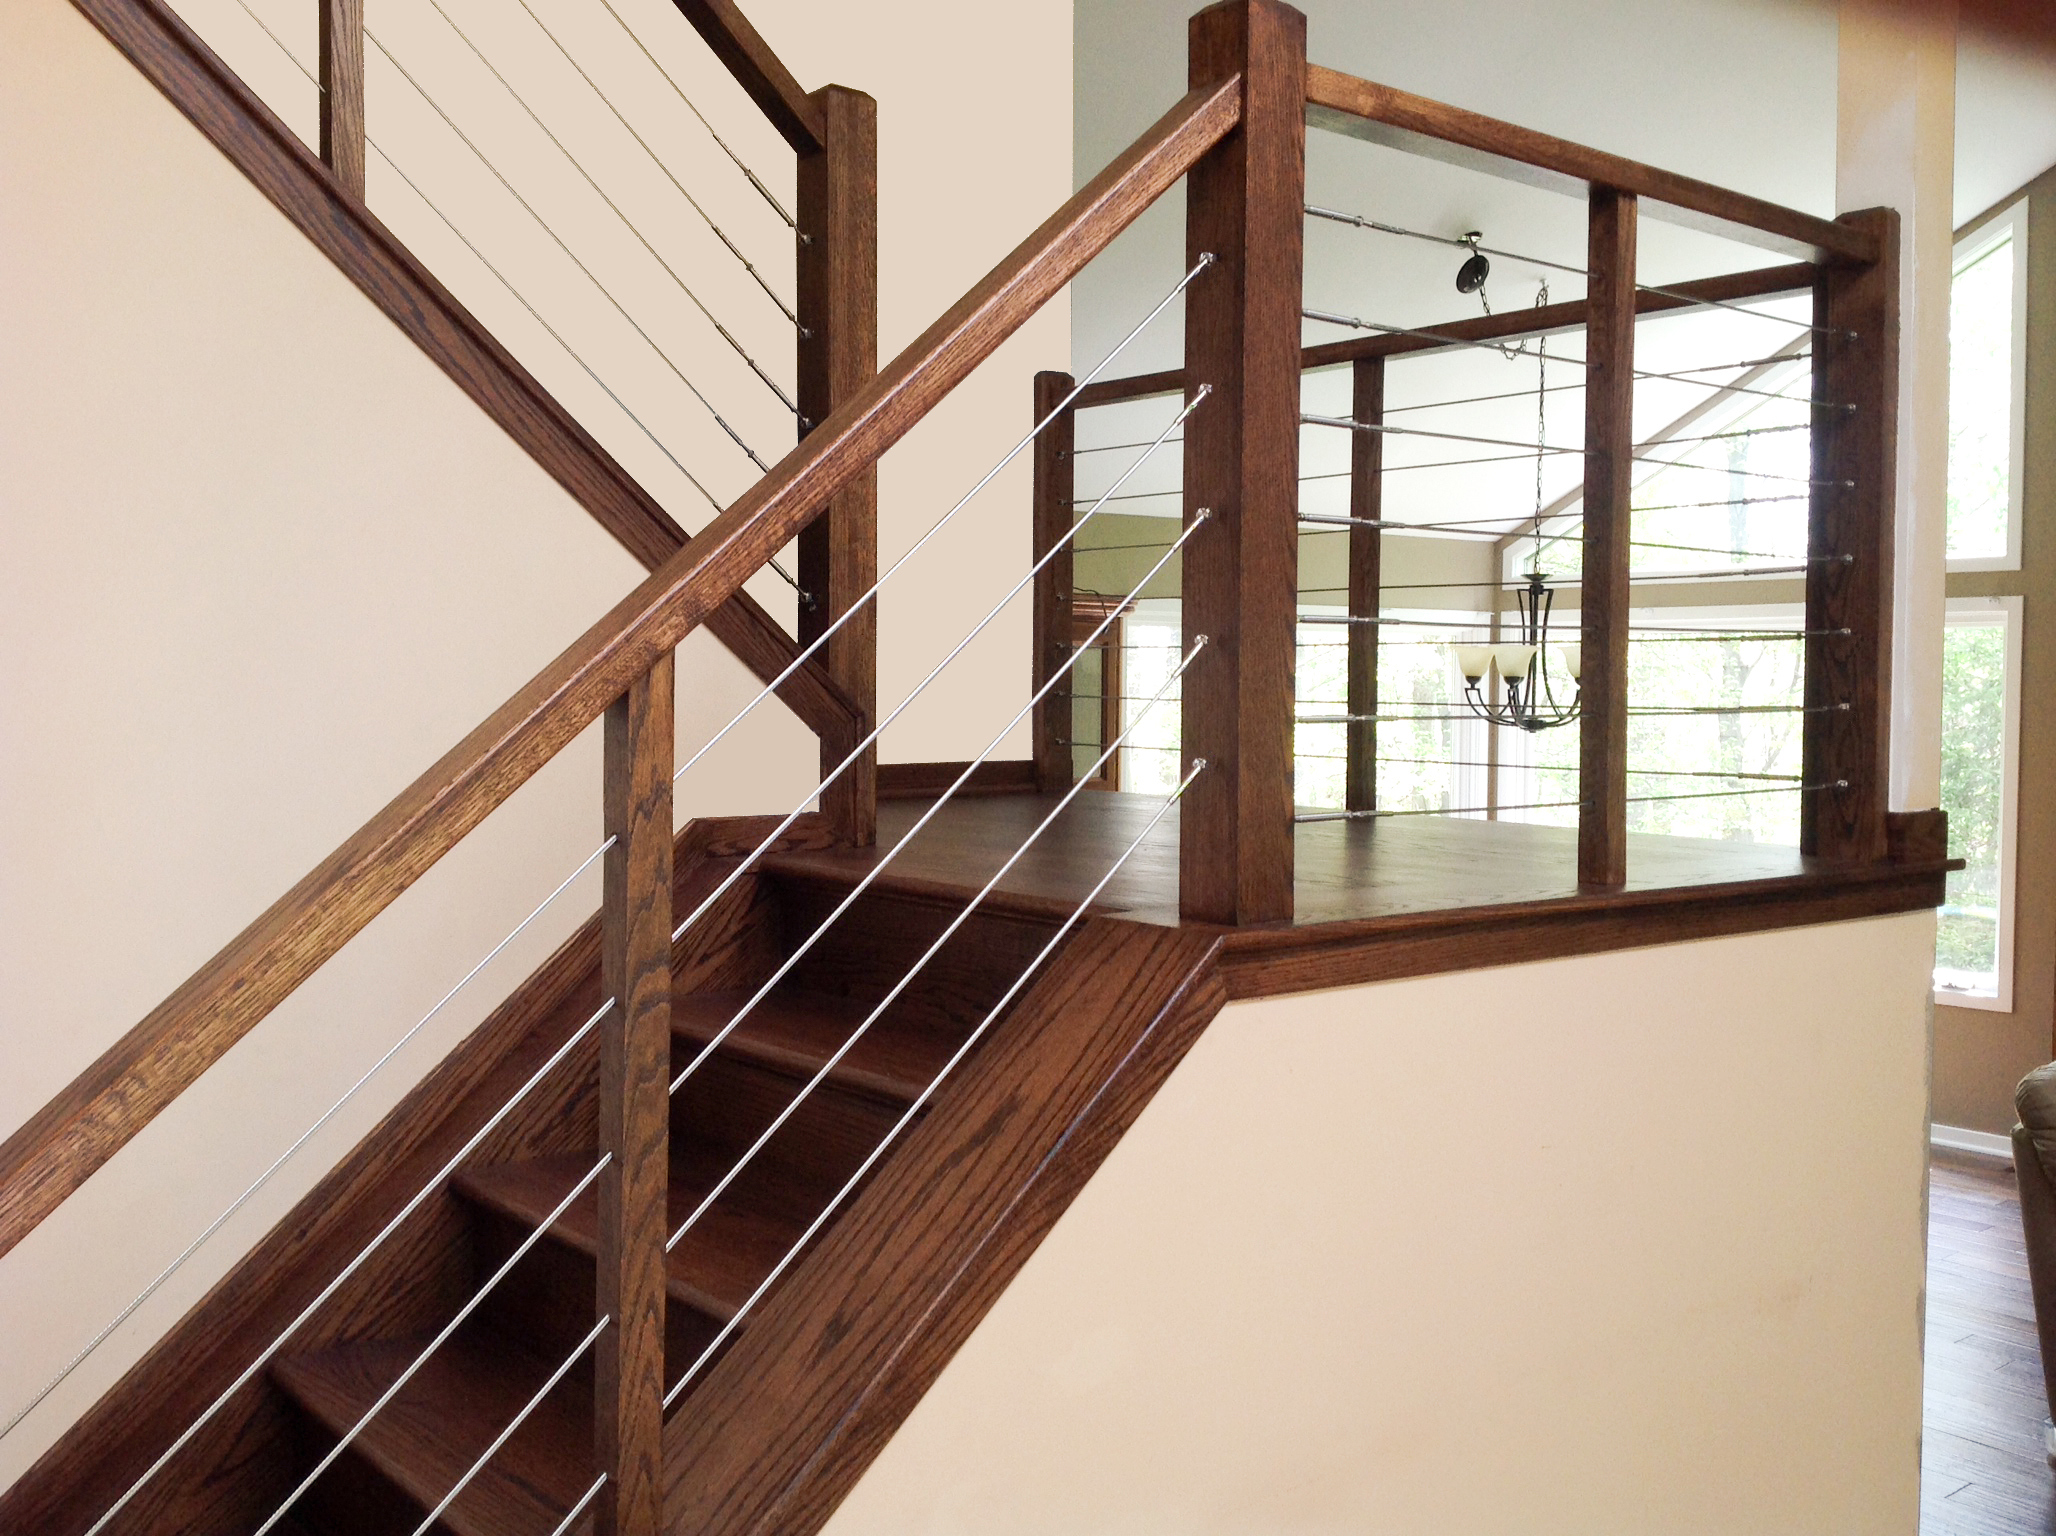 Interior cable railing on staircase